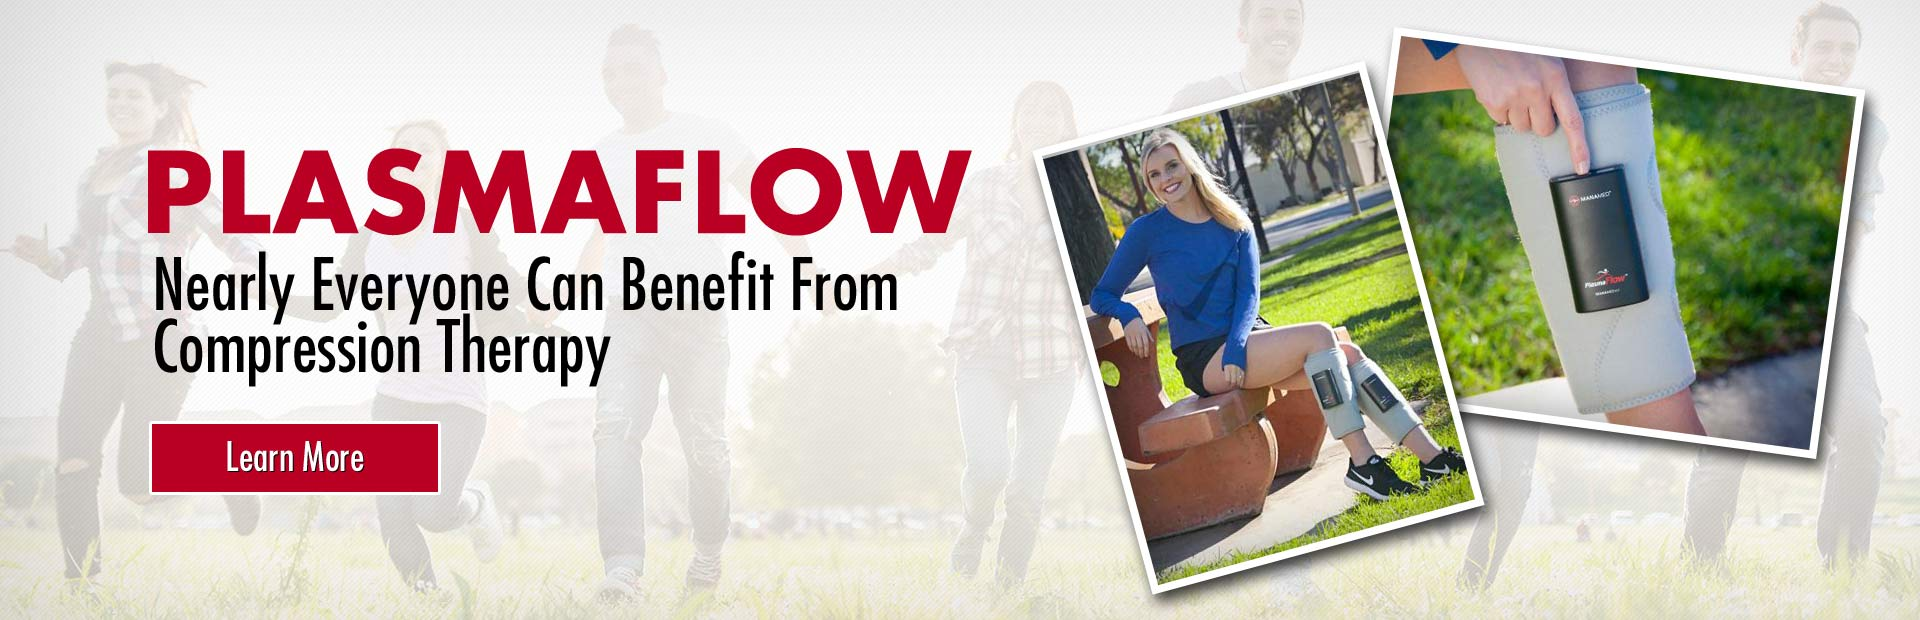 PlasmaFlow: Nearly everyone can benefit from compression therapy. Click here for more information.